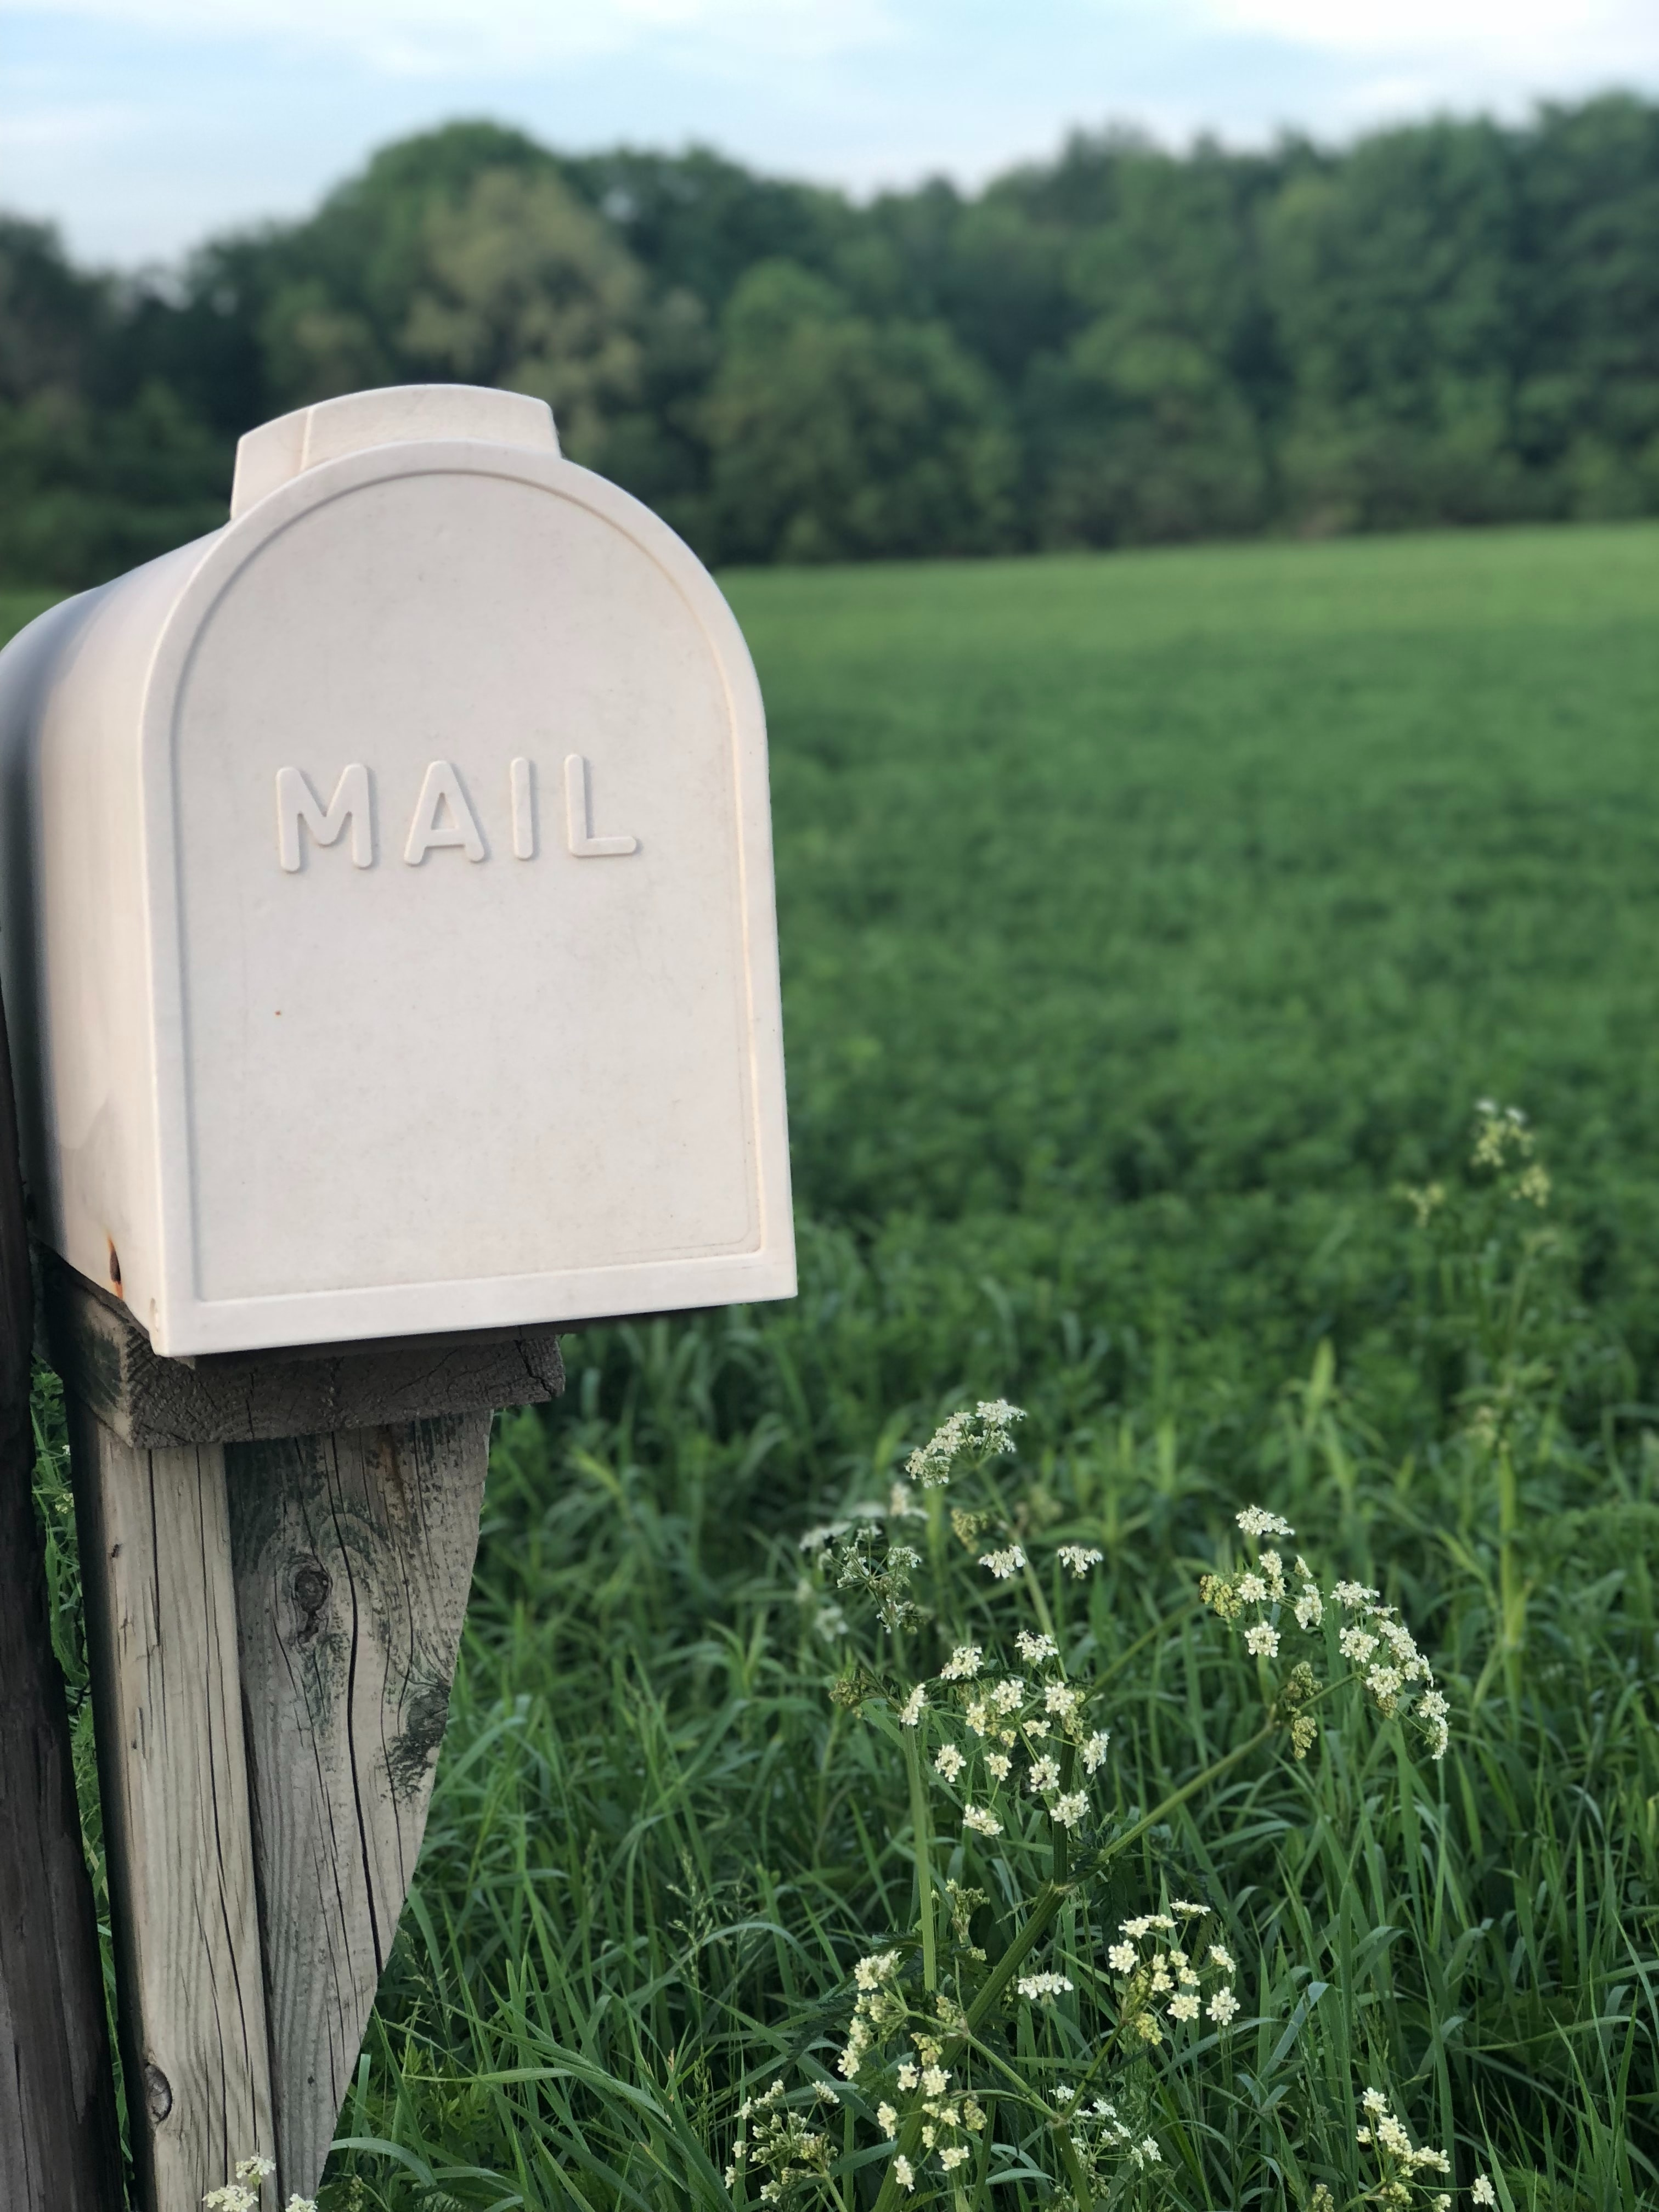 shallow focus of gray mailbox against a grassy background